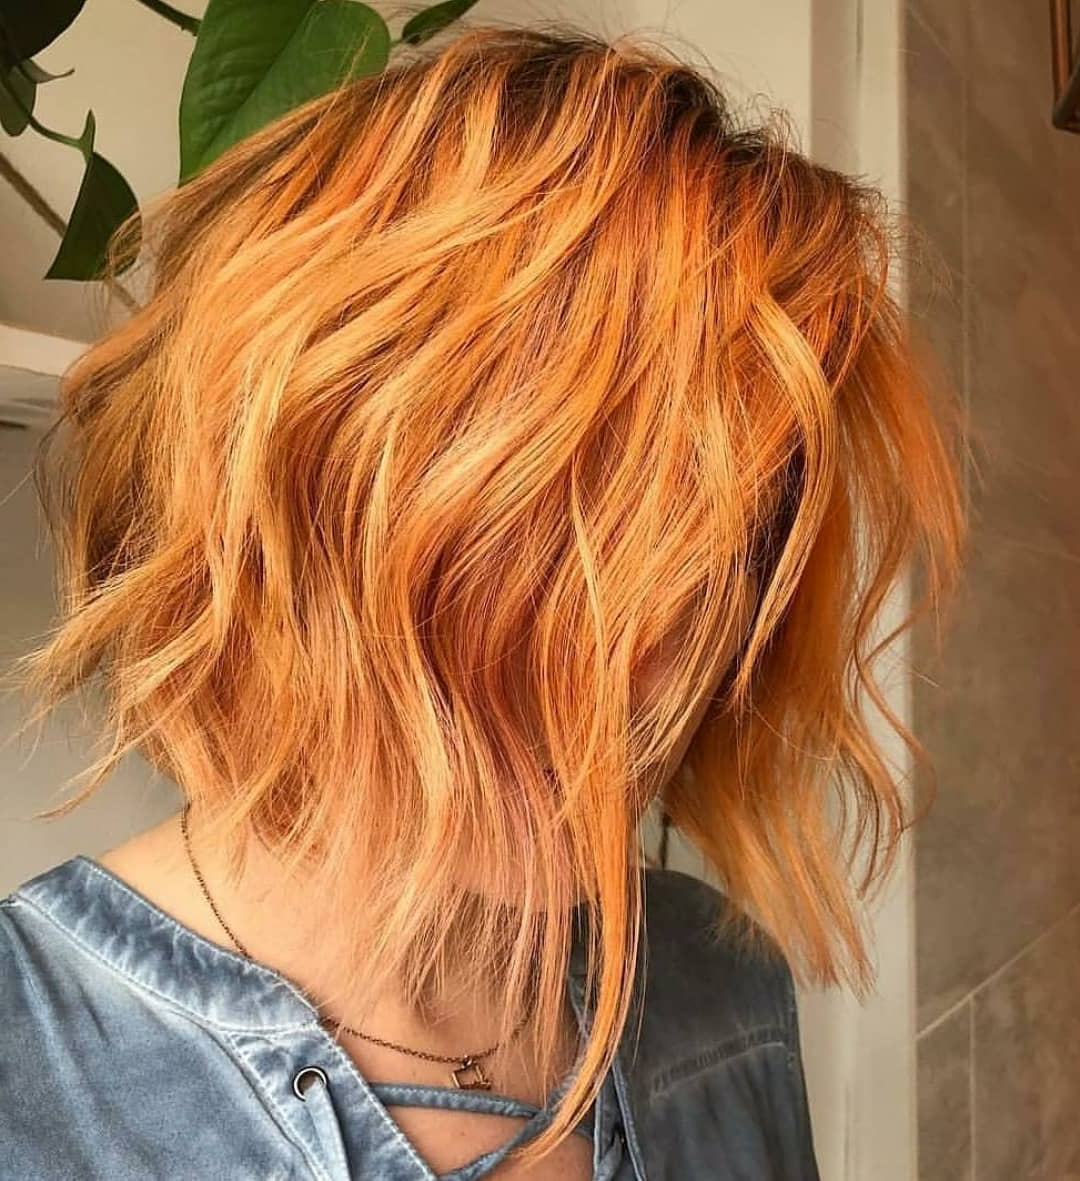 10 Trendy Choppy Lob Haircuts For Women, Best Medium Hair Intended For Latest Jagged Red Ombre Hairstyles (Gallery 14 of 20)